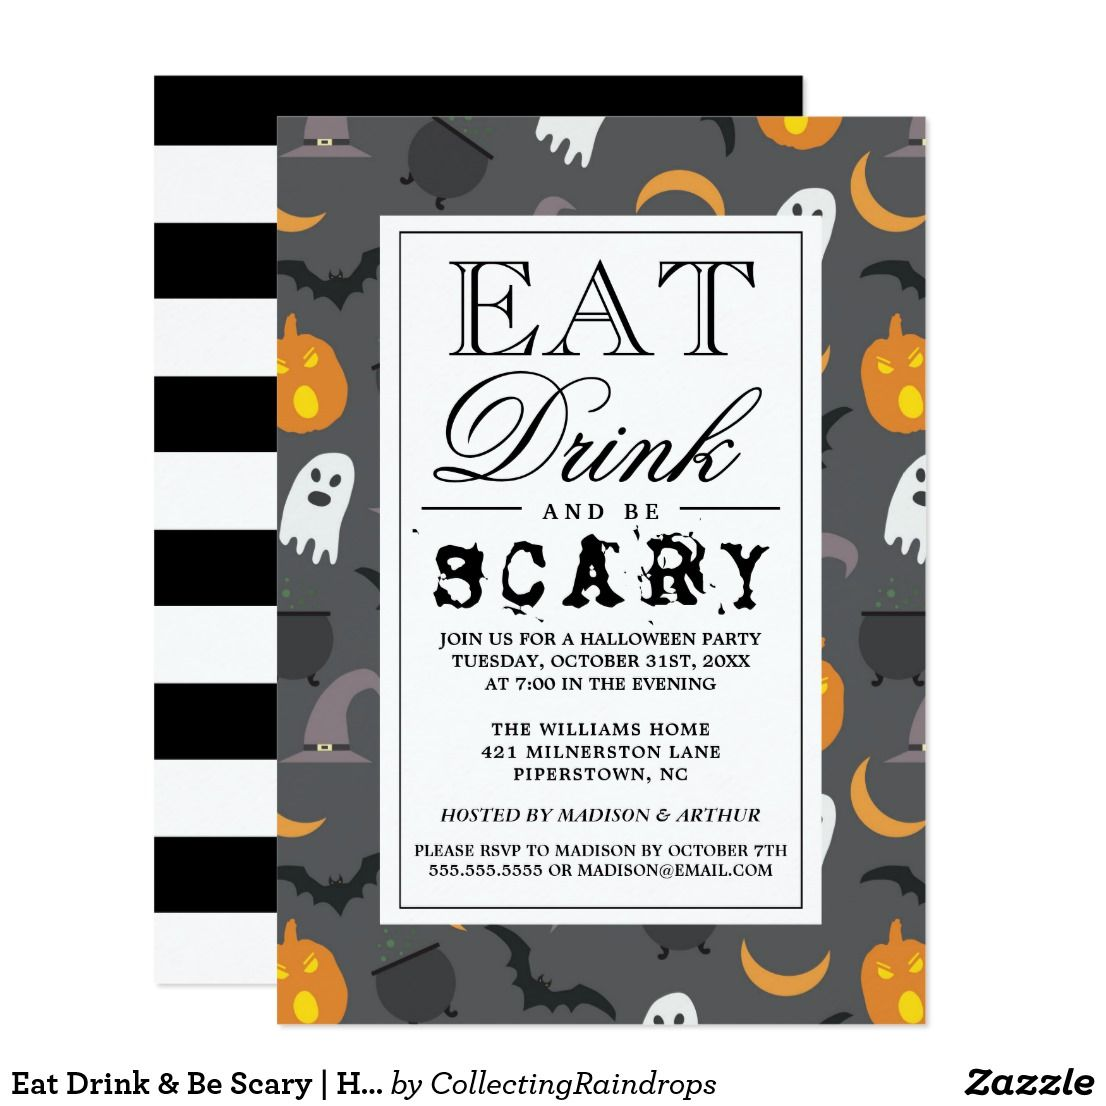 Eat Drink & Be Scary | Happy Halloween Party Card | Halloween ...